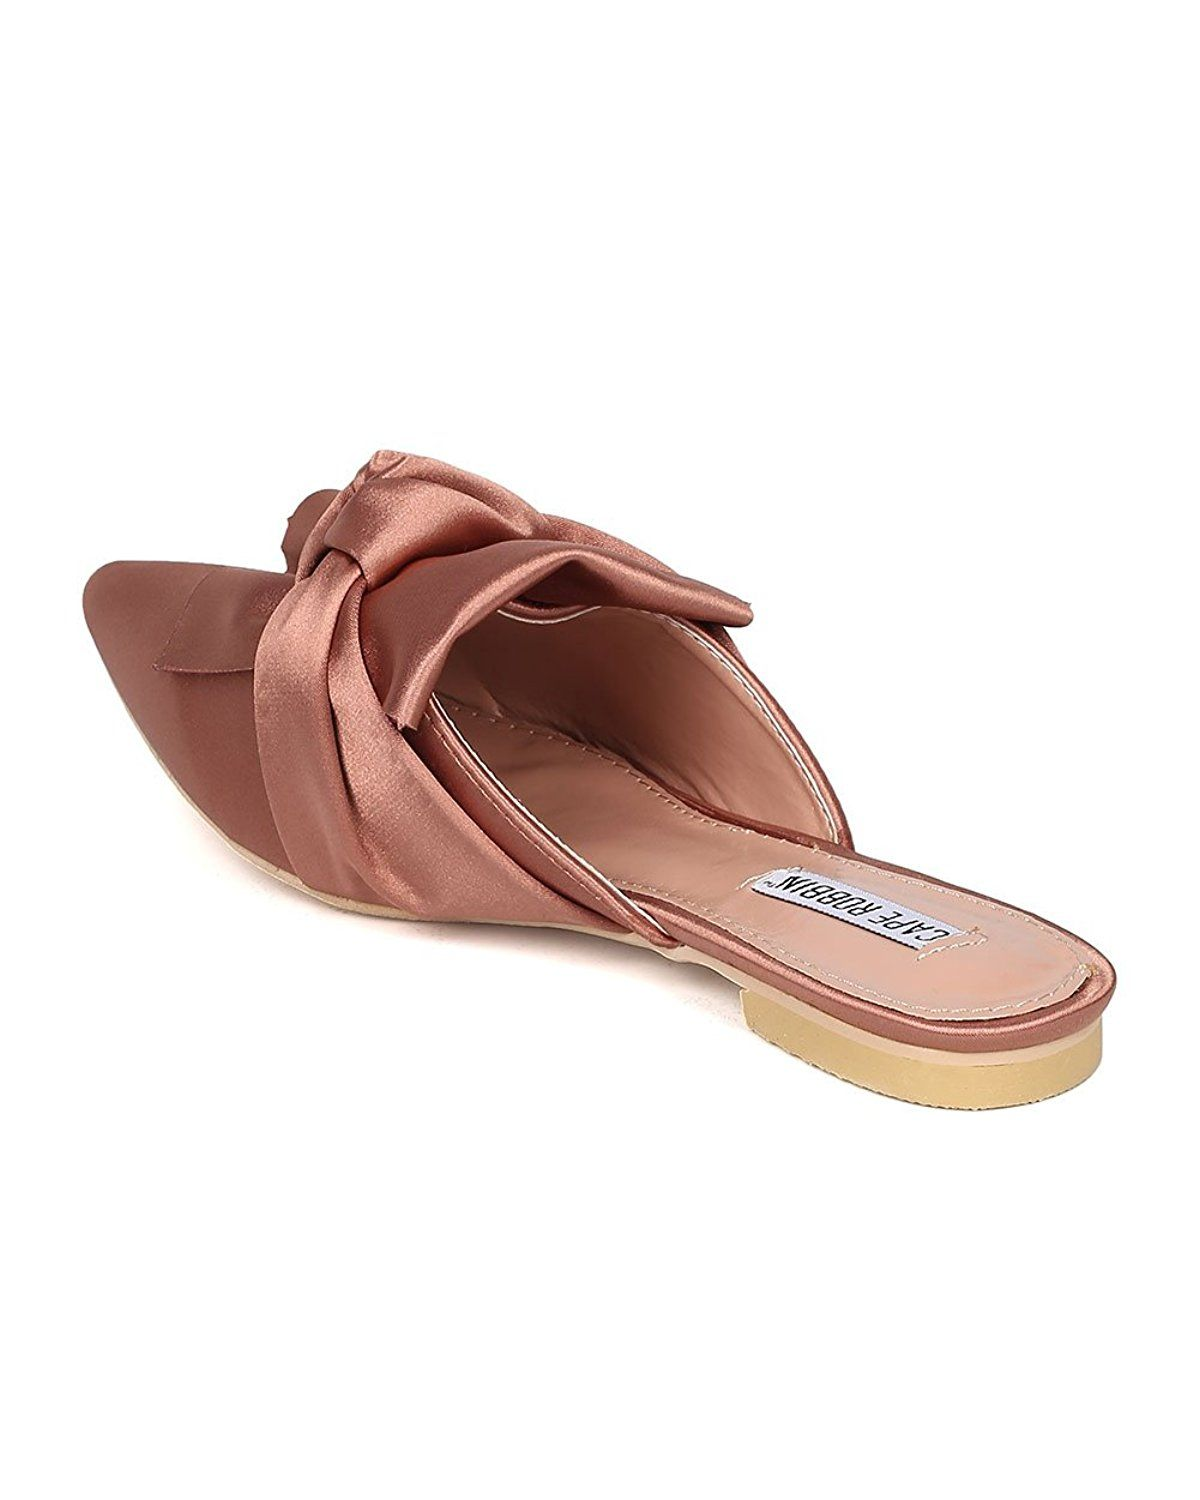 d16d6772f20b CAPE ROBBIN Women Knotted Flat Mule - Bow Slip On Sandal - Pointy Toe Slide  - HK10    Read more details by clicking on the image.  womenshoes